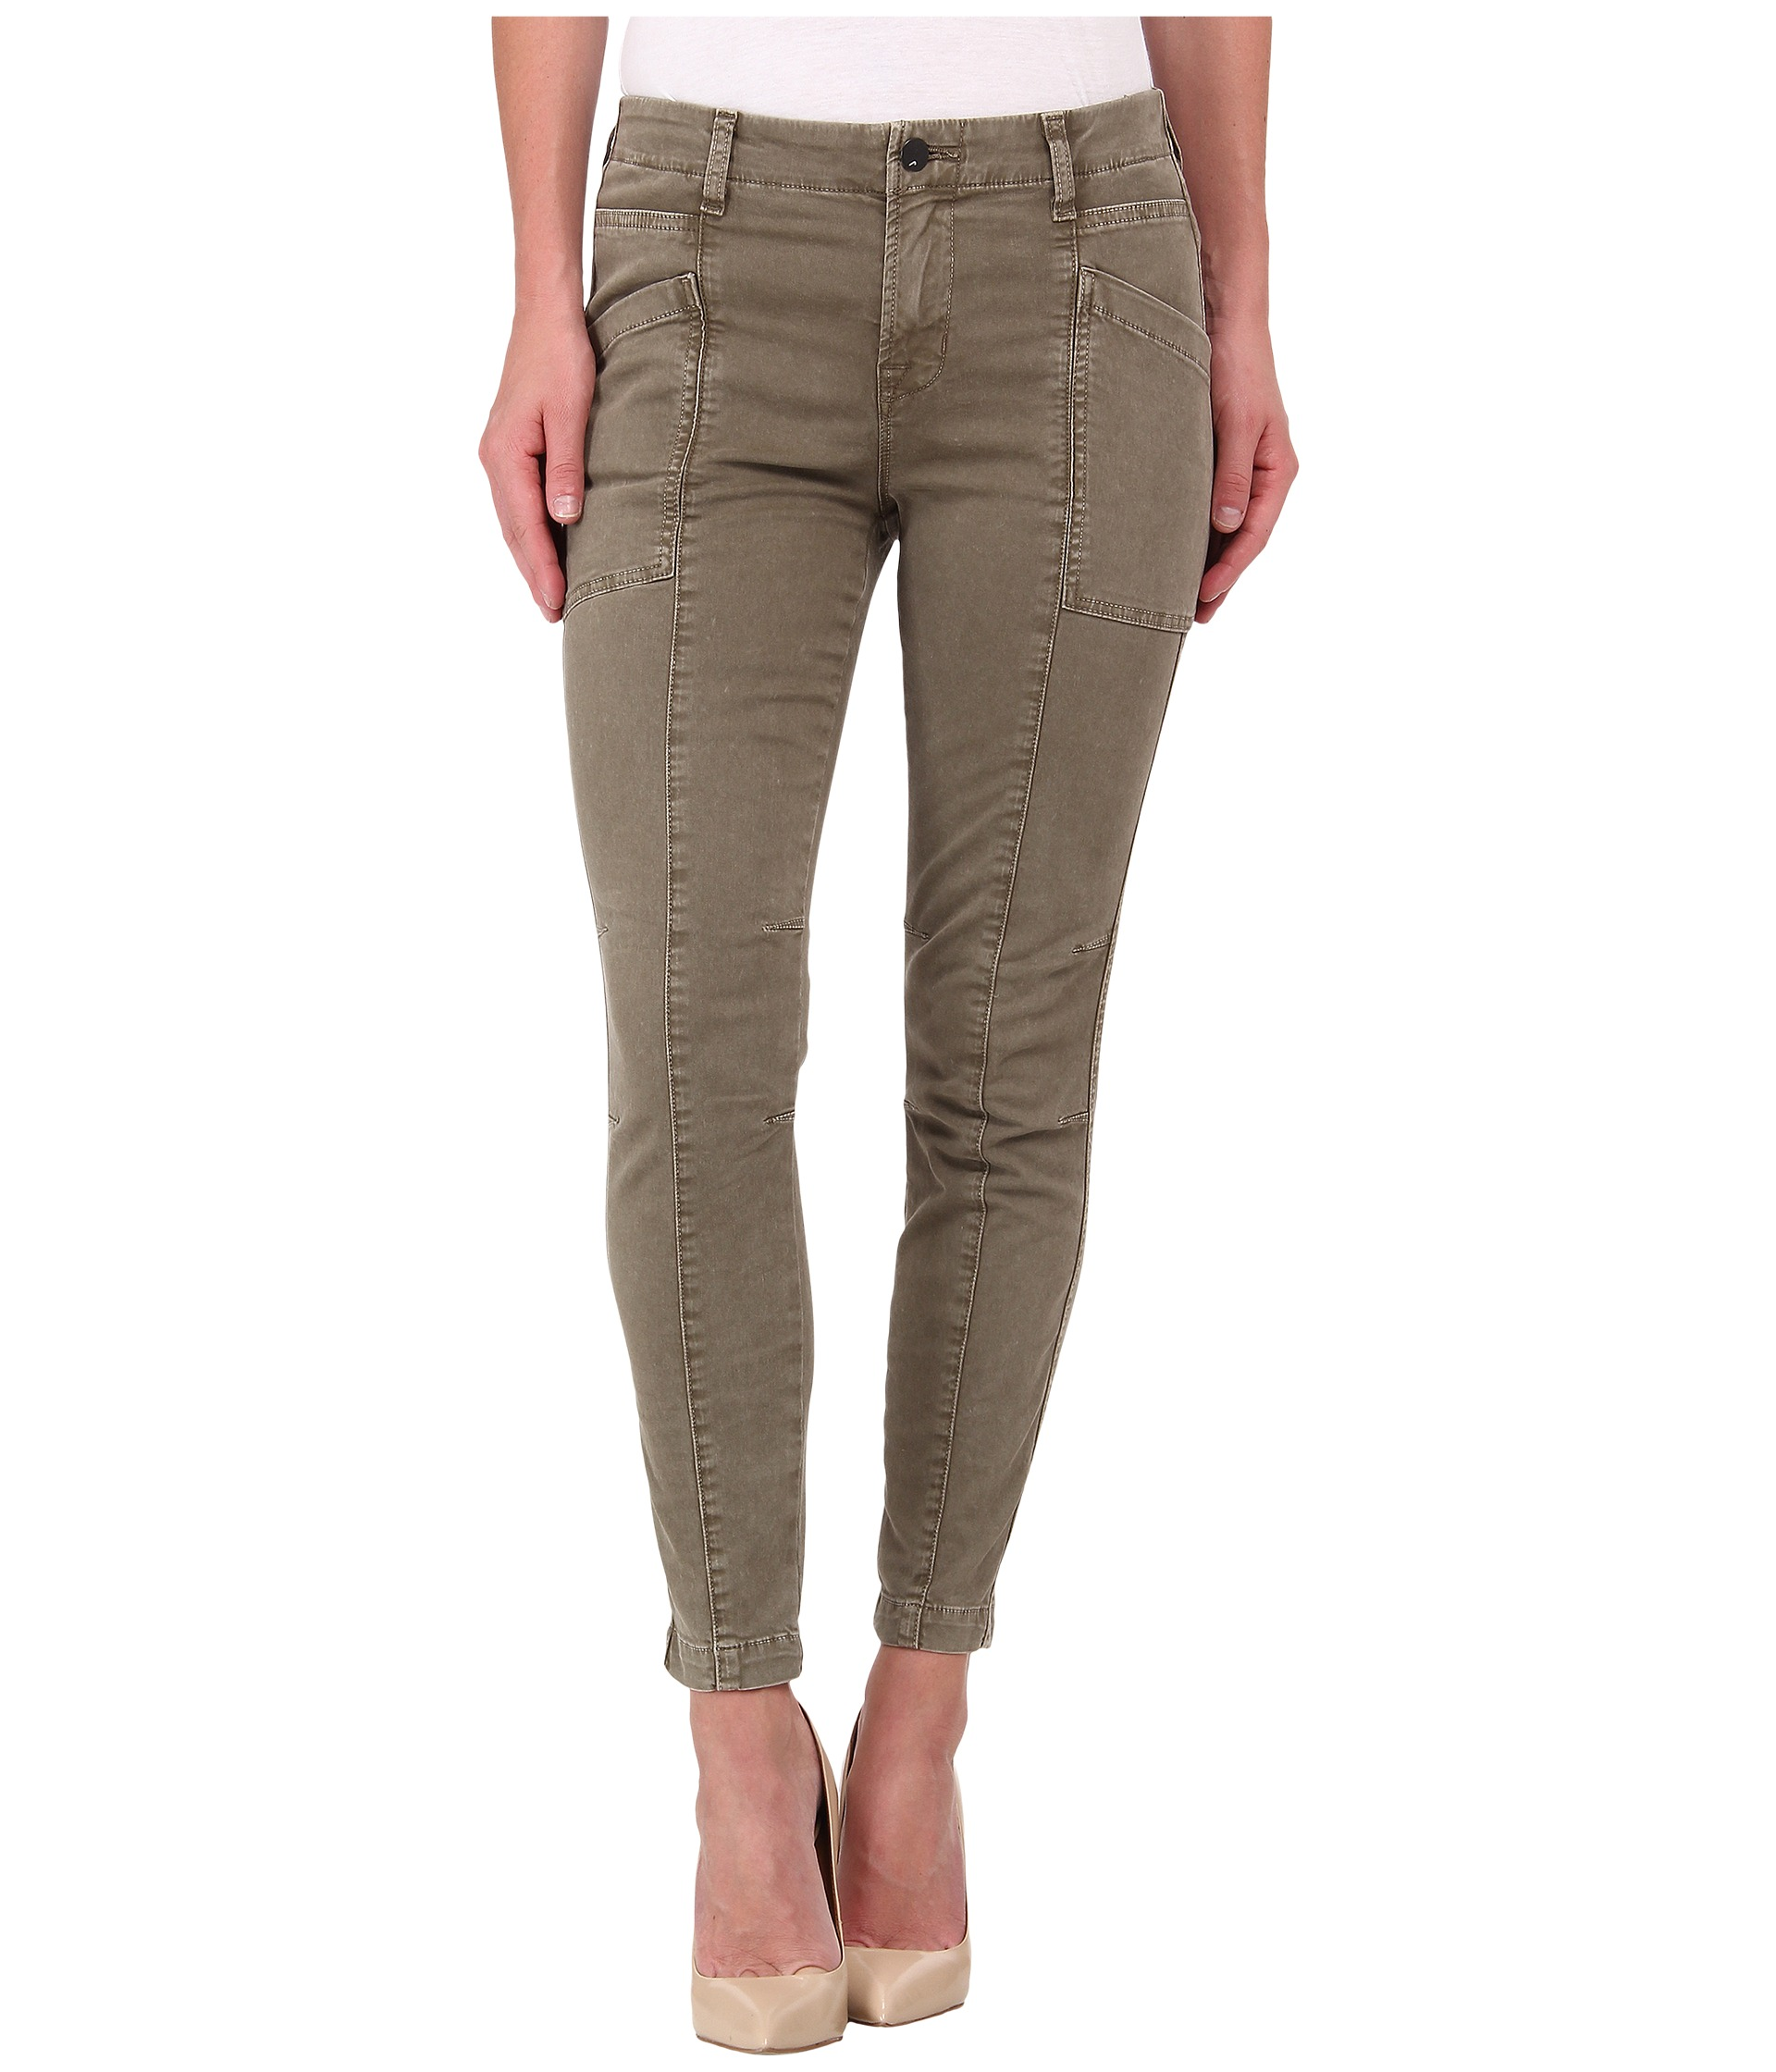 Elegant  Your Feedback About QuotCool And Elegant Womens Cargo Pantsquot Here